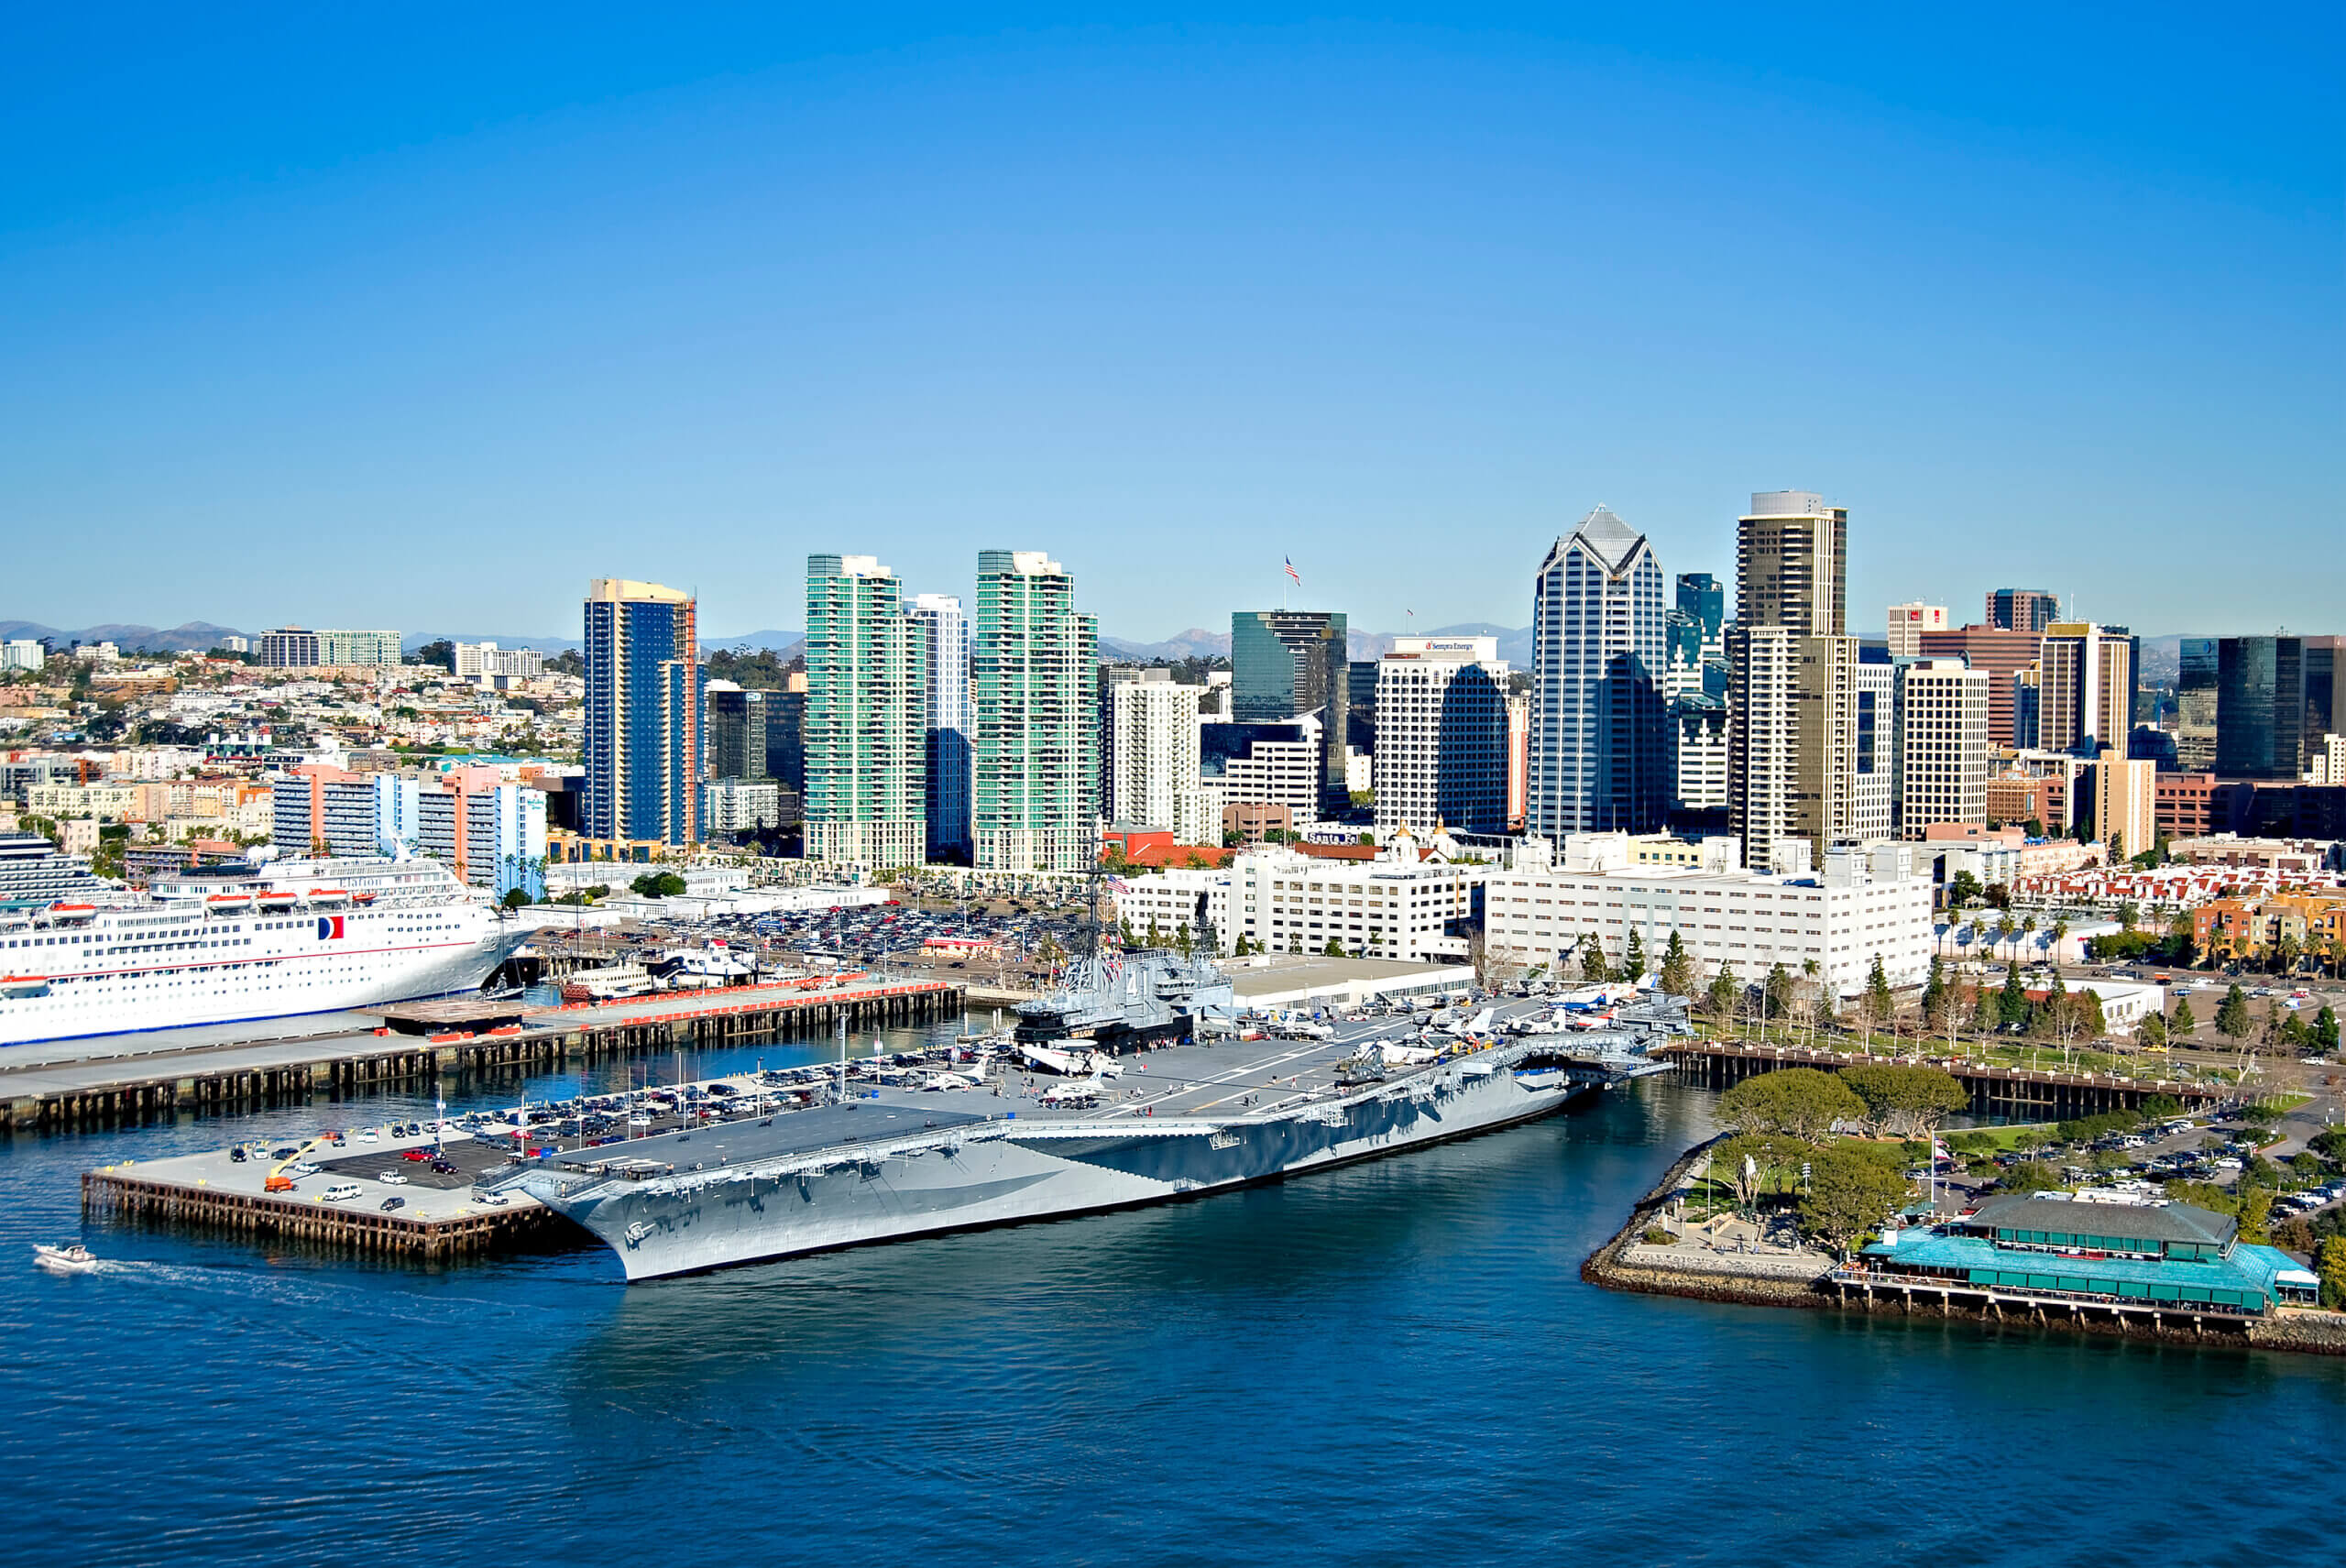 USS Midway Museum - a REAL aircraft carrier fun for the family, once in a lifetime memory for everyone! Create a once in a lifetime memory exploring the USS Midway, the longest-serving U.S. Navy aircraft carrier of the 20th century!